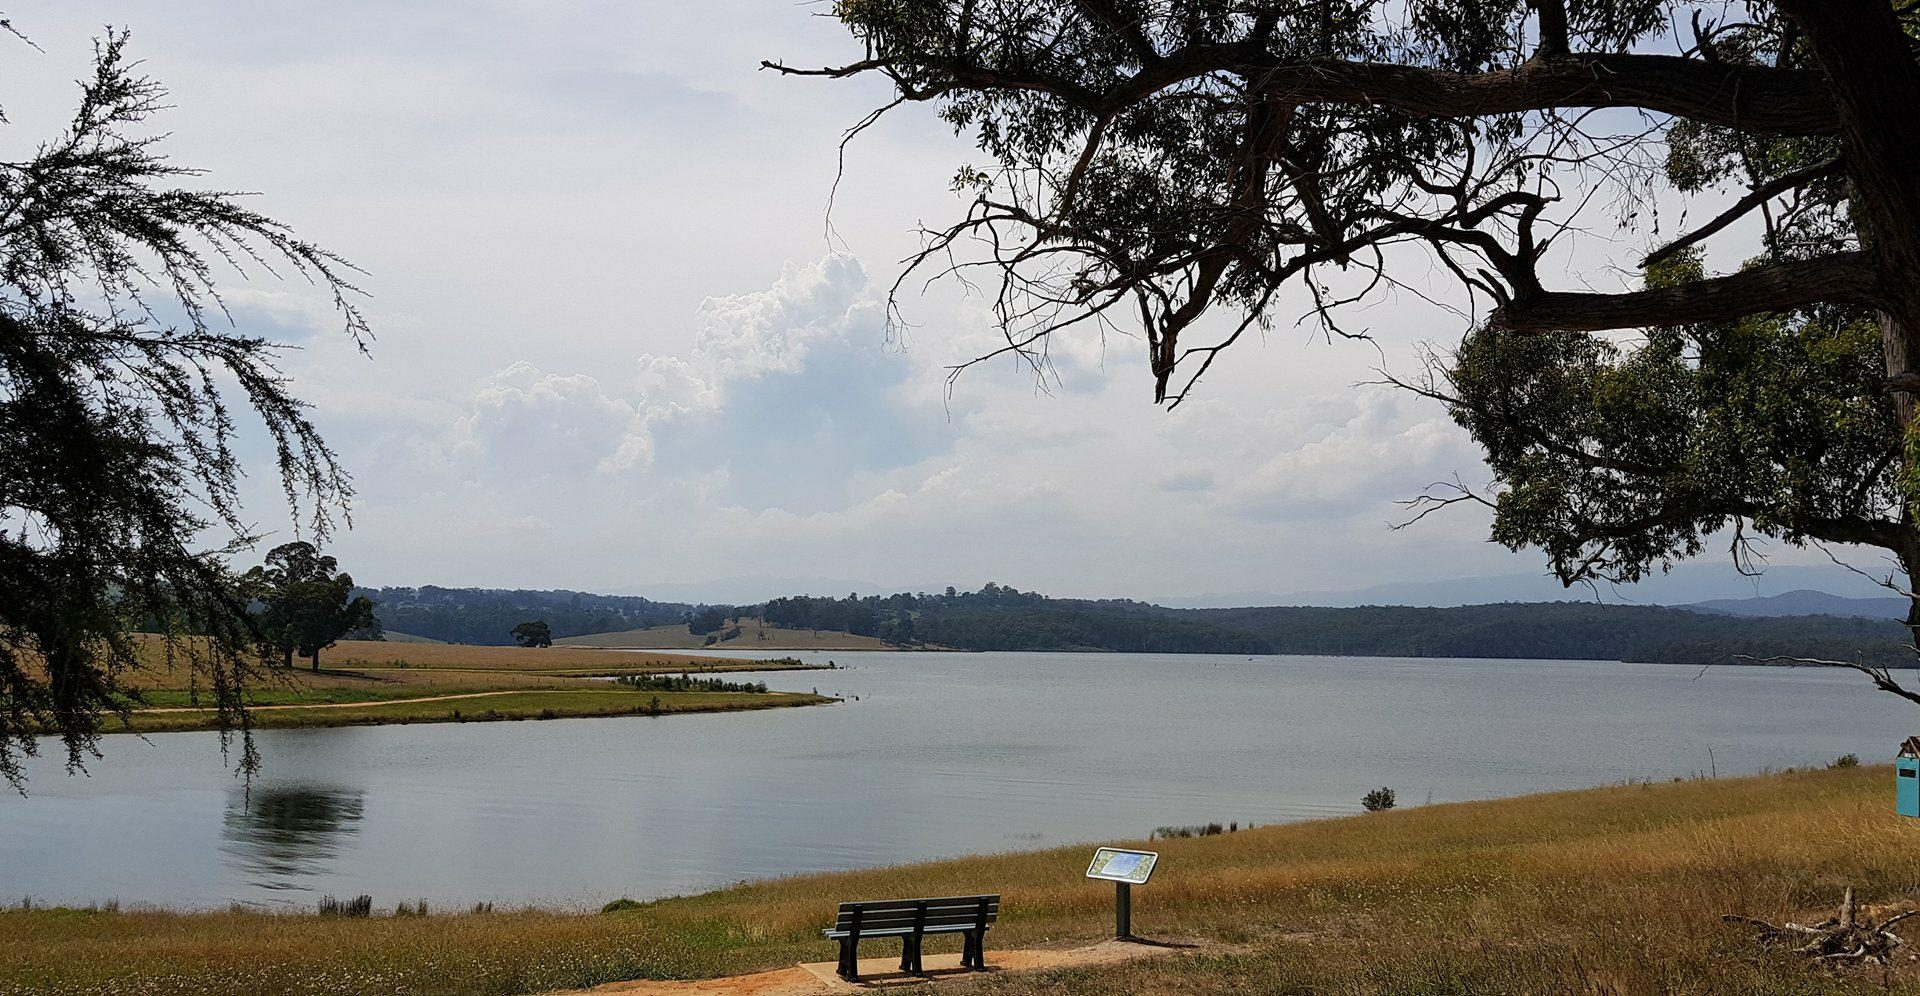 Picturesque picnic locations in Gippsland